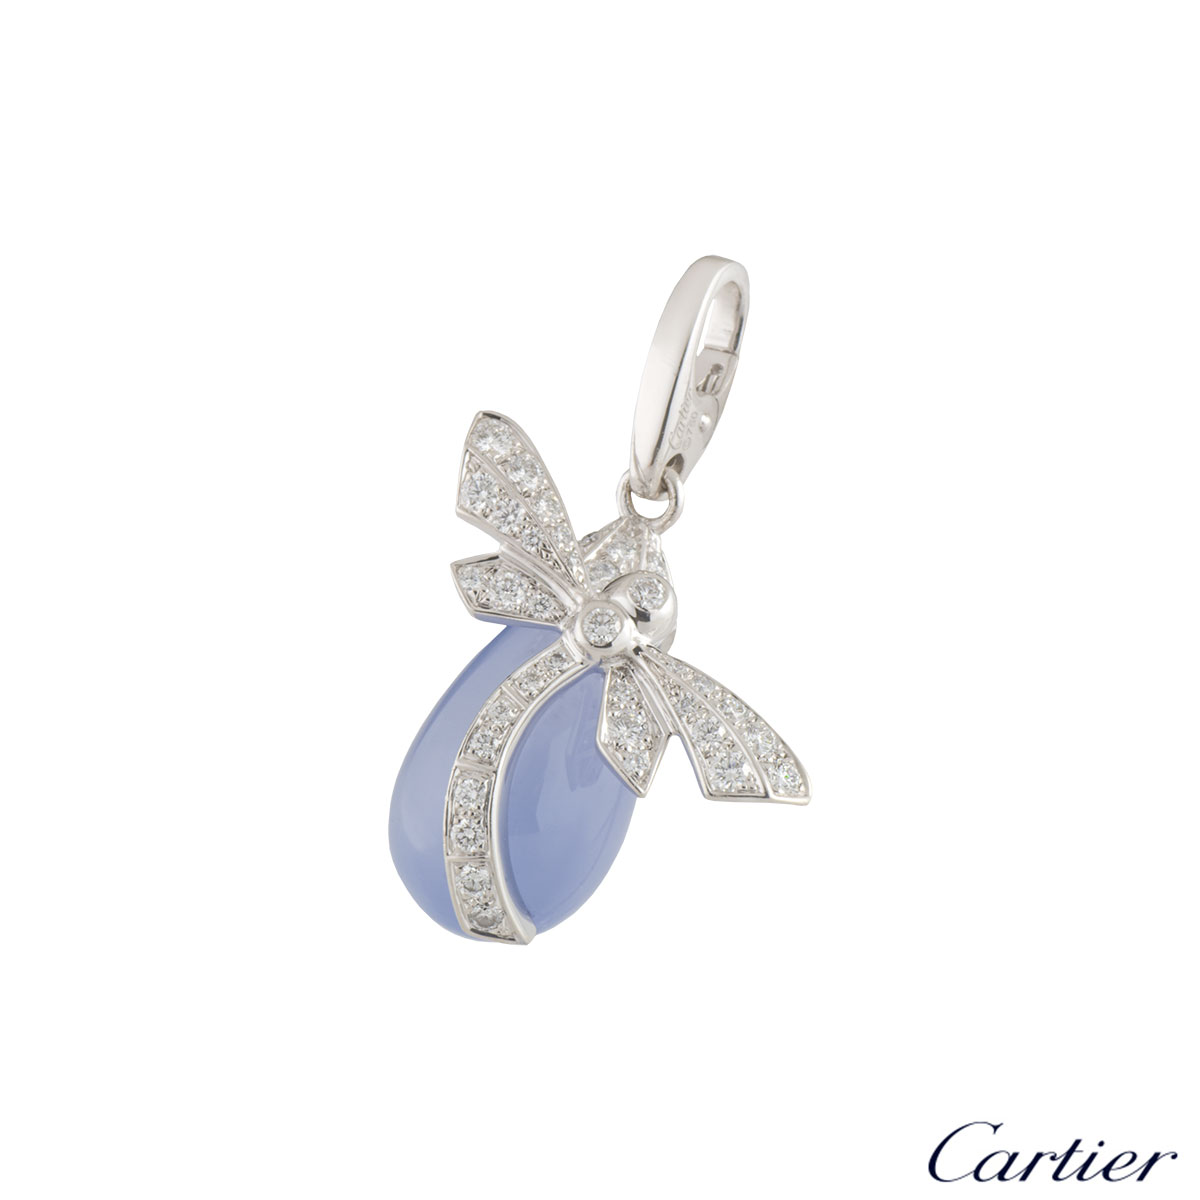 Cartier White Gold Diamond and Chalcedony Dragonfly Charm